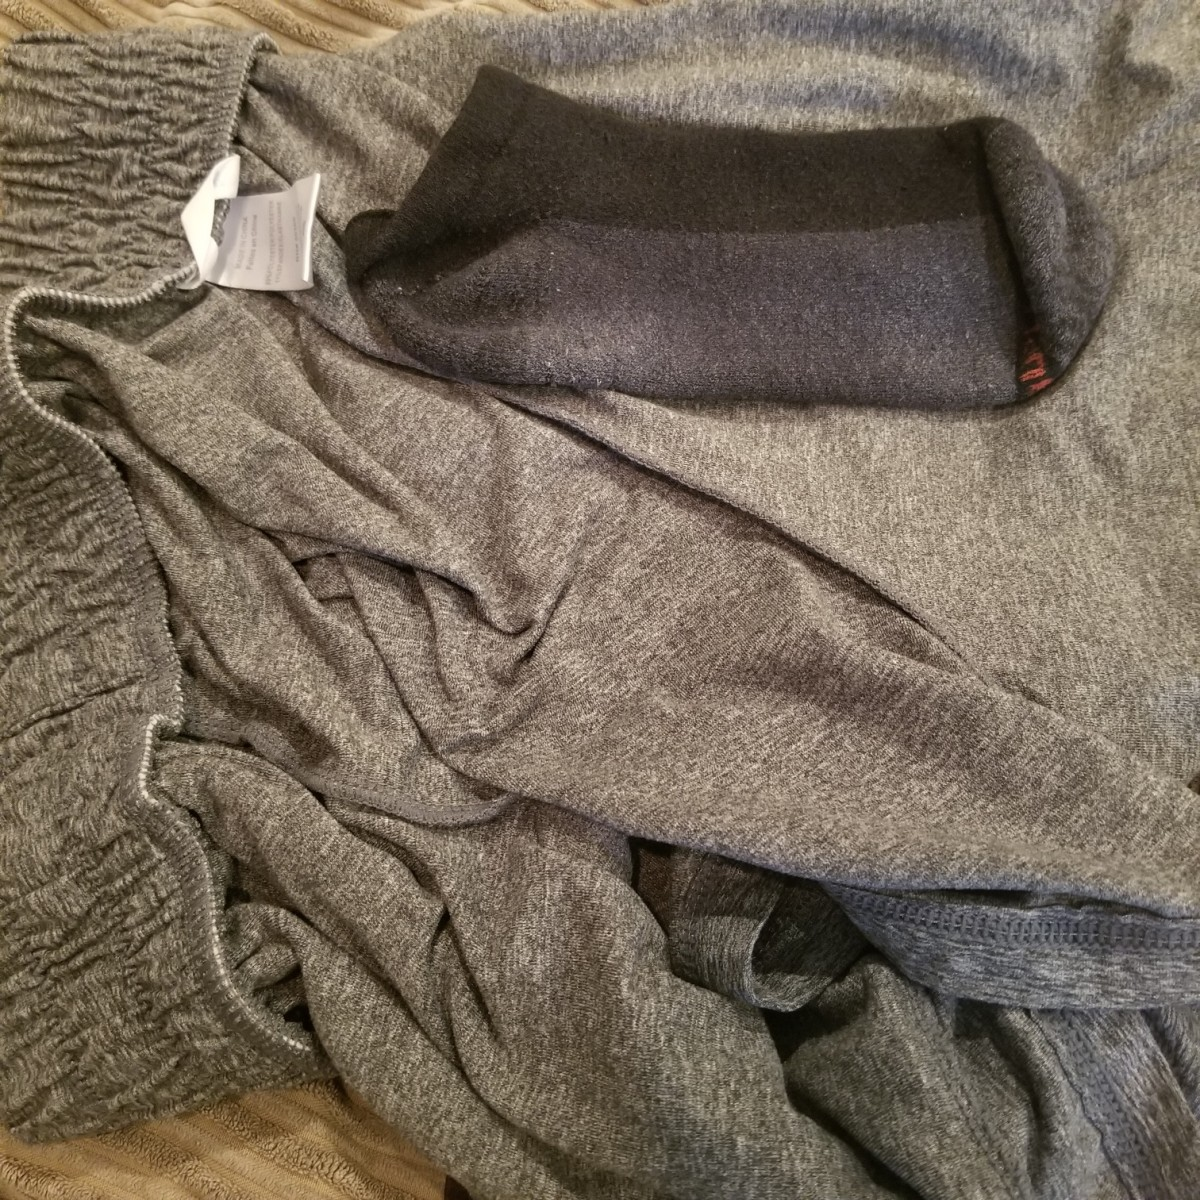 You may find odd socks hidden in large clothing items if you search for them.